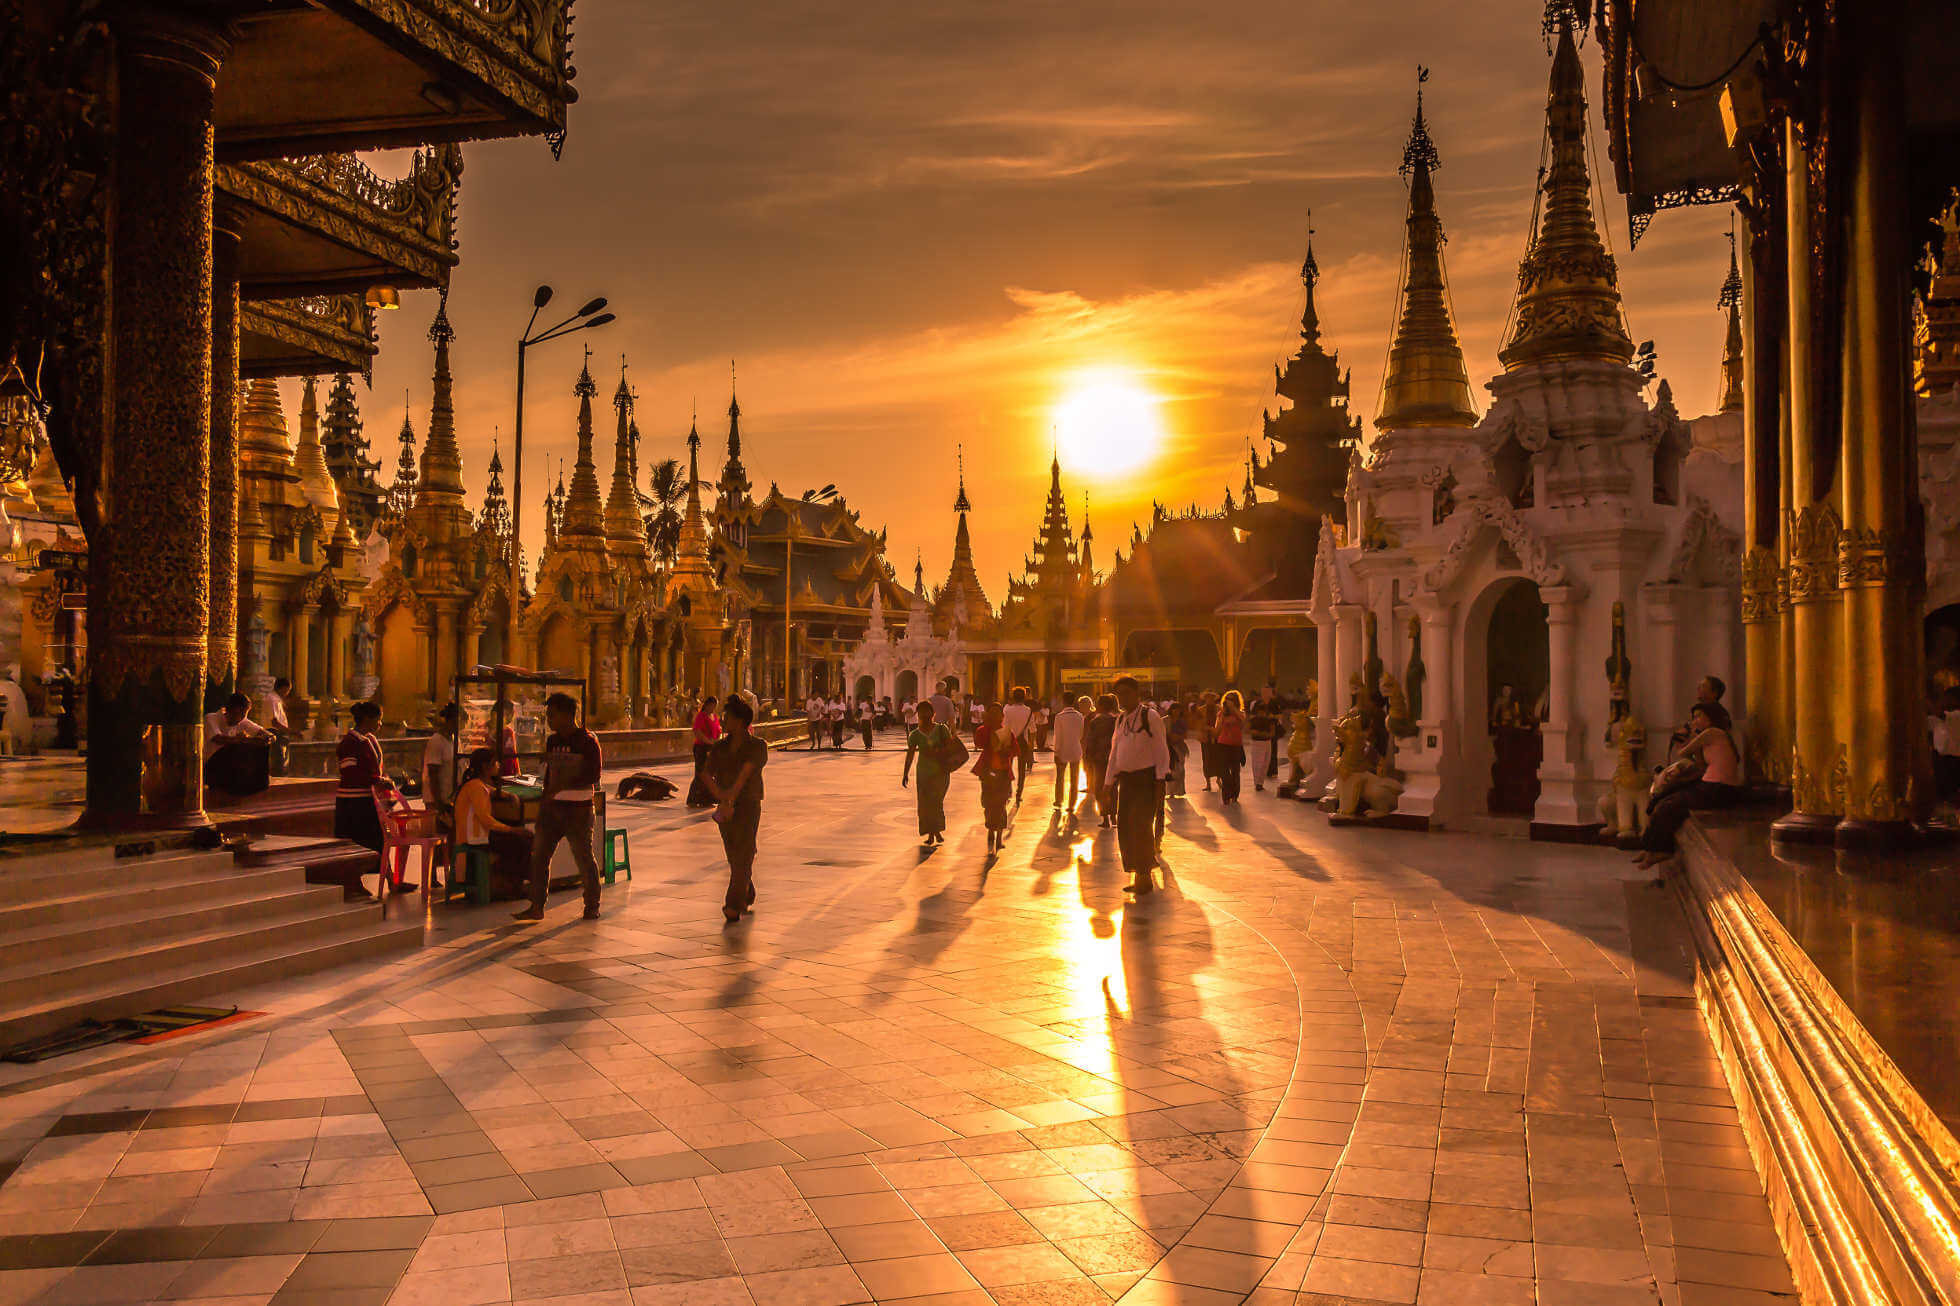 Check the weather before you visit Myanmar